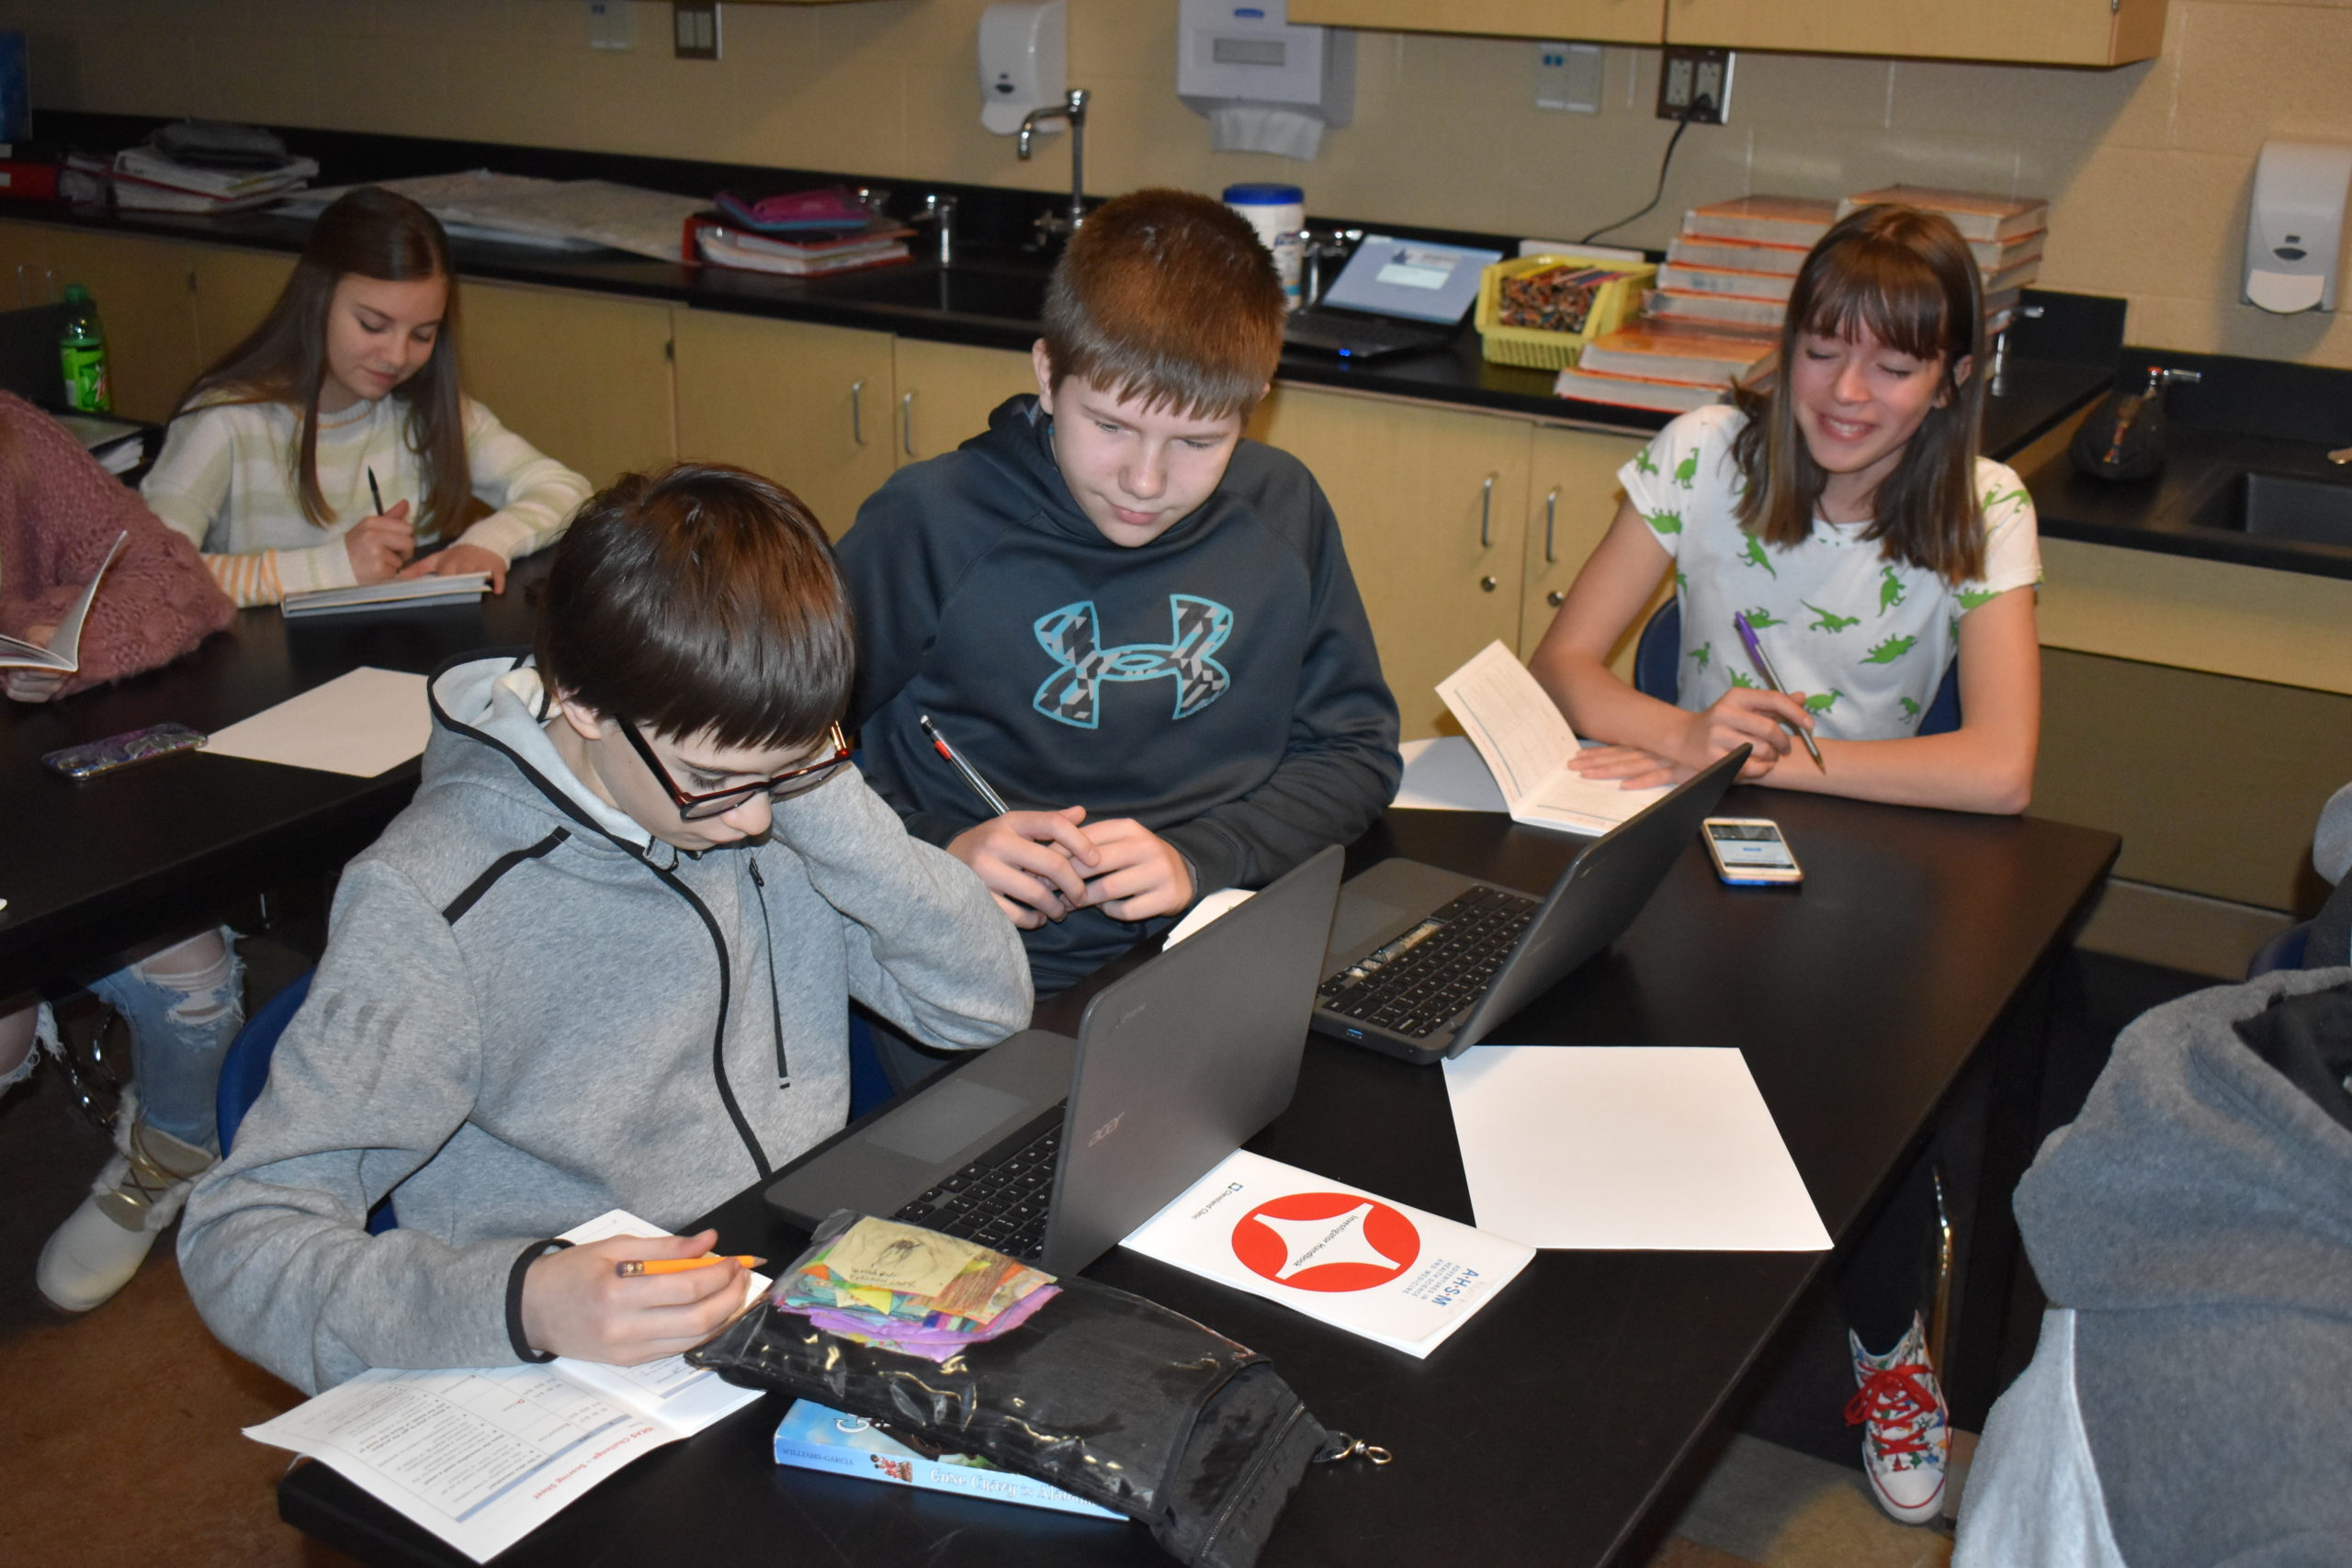 Brookfield Middle School students Robert Brode, front, and Rob Myers use Chromebook computers for a class. Reanna Reardon is pictured at left and Danica Bliss at right.